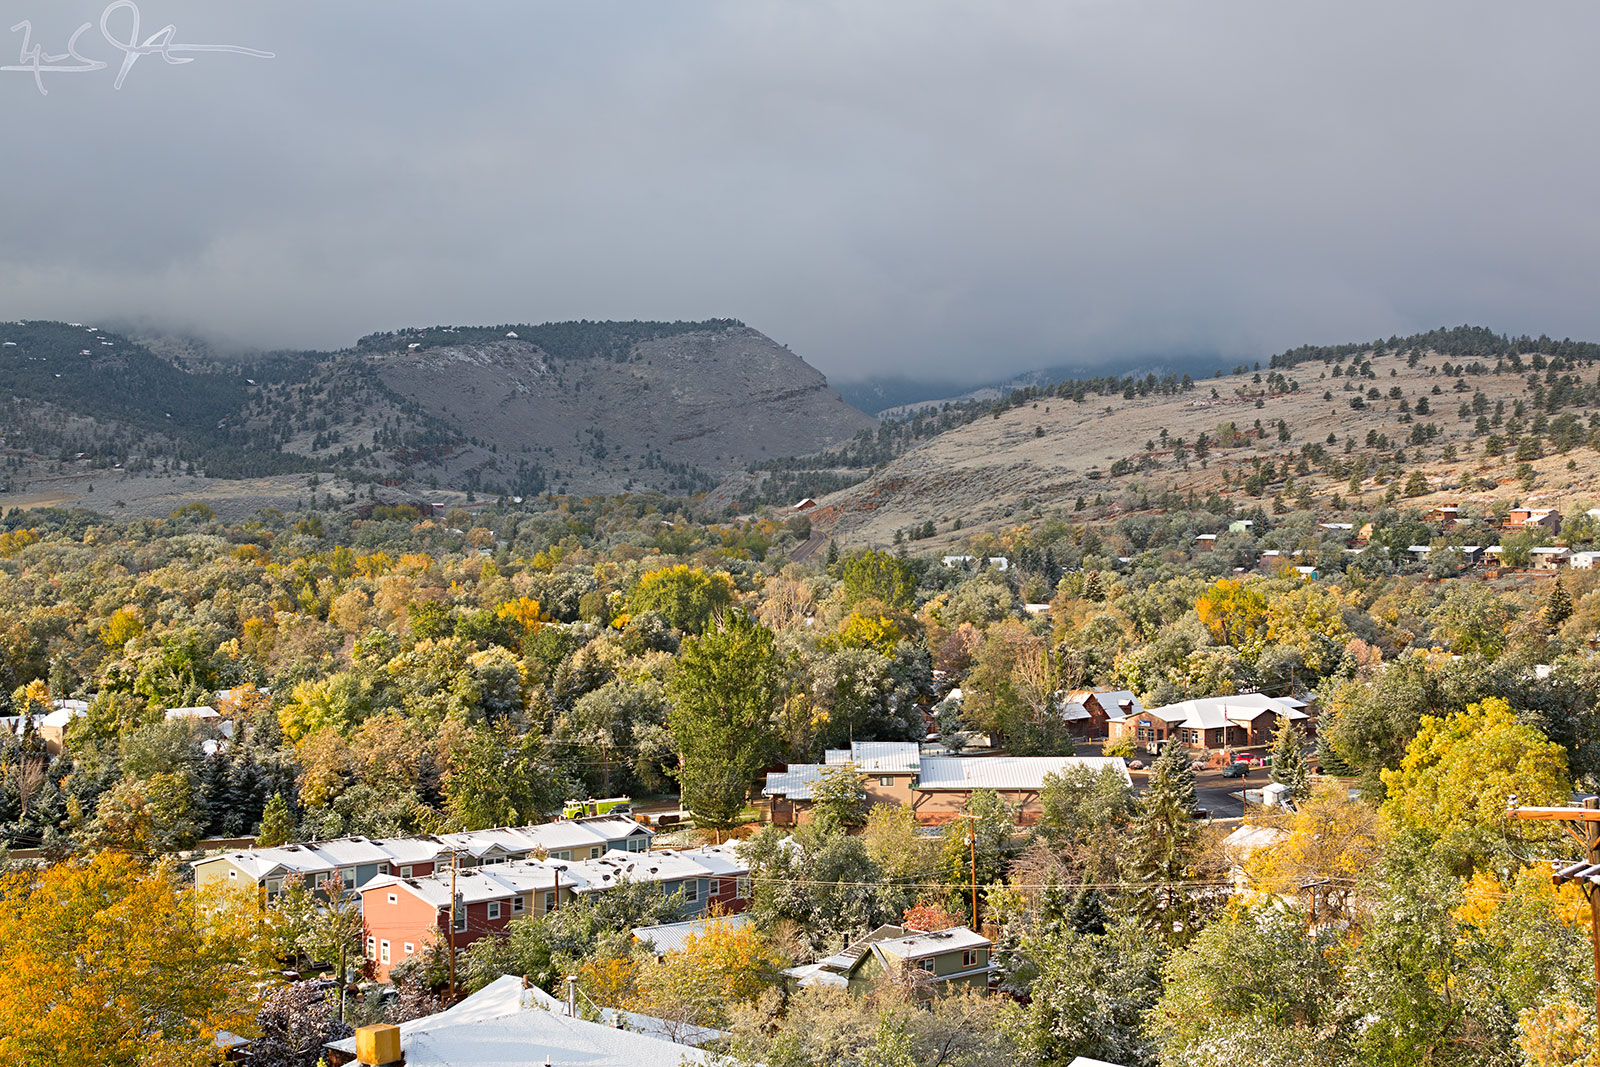 A dusting of snow over the town of Lyons, CO.